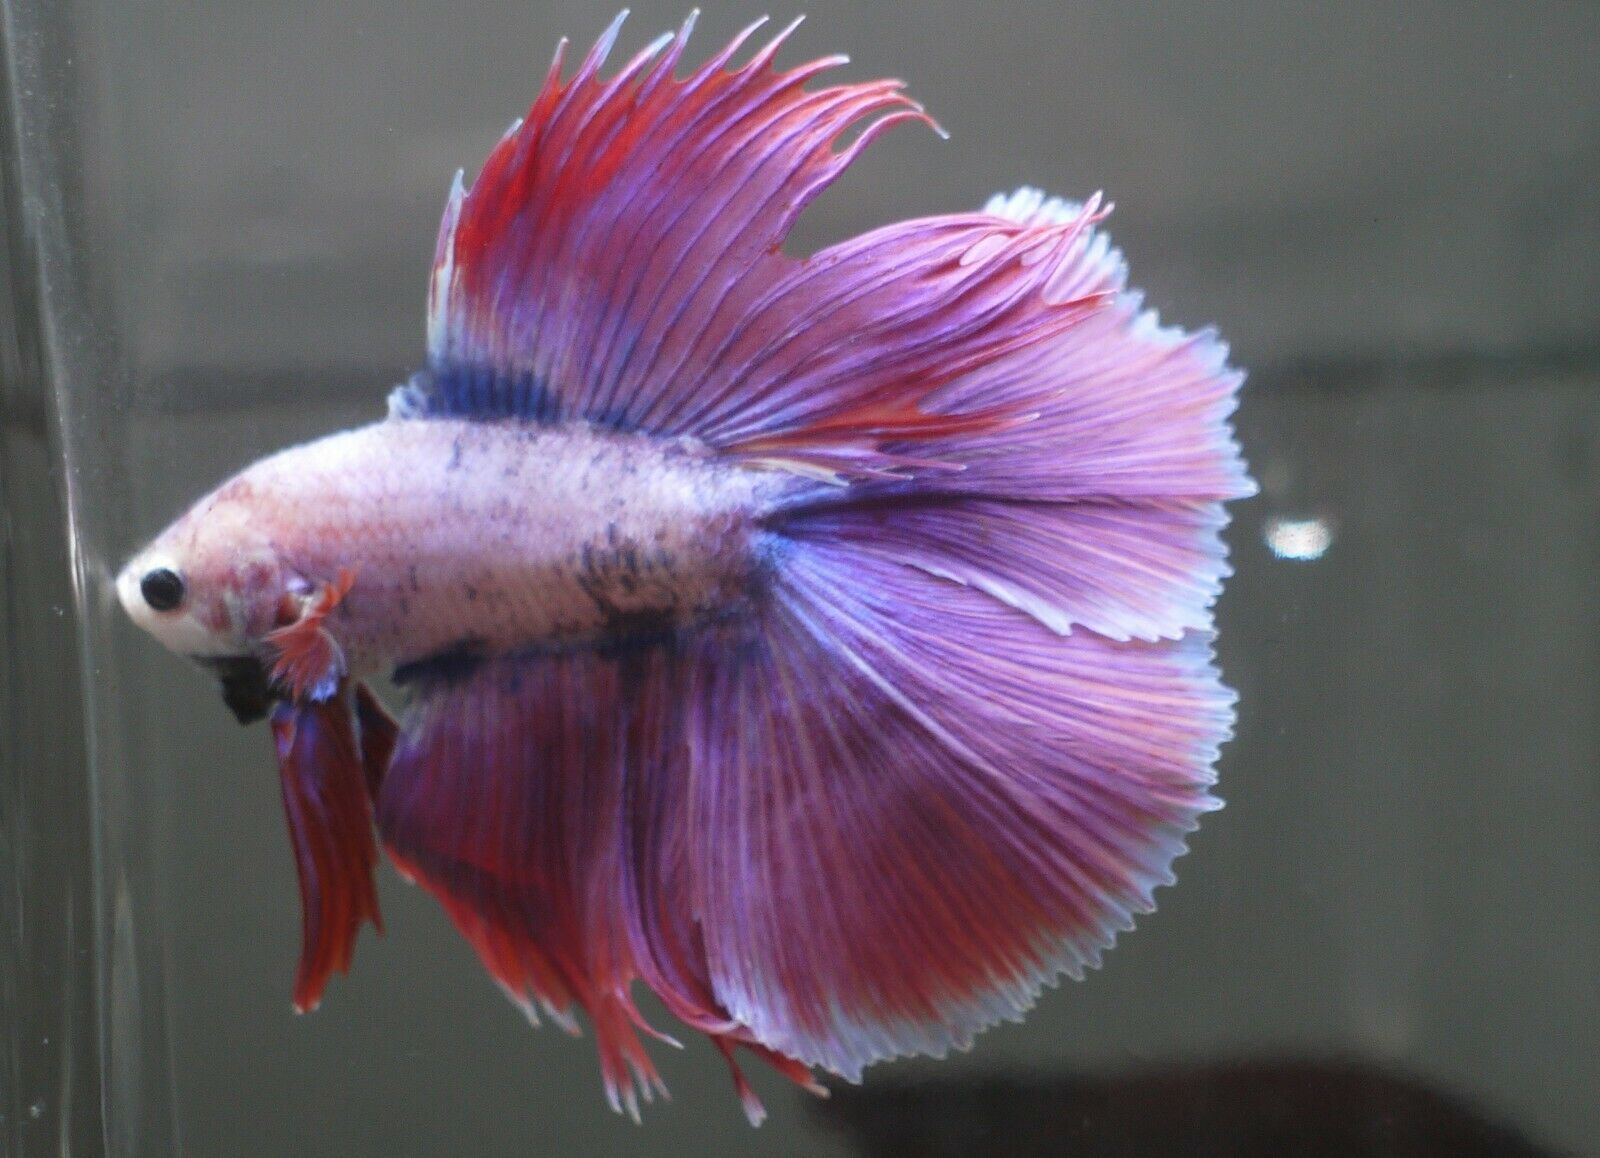 Live Betta Tropical Fish Double Tail Halfmoon Betta C70 Betta Fish Ideas Of Betta Fish Bettafish Live Betta Tropical Fis Halfmoon Betta Betta Fish Betta